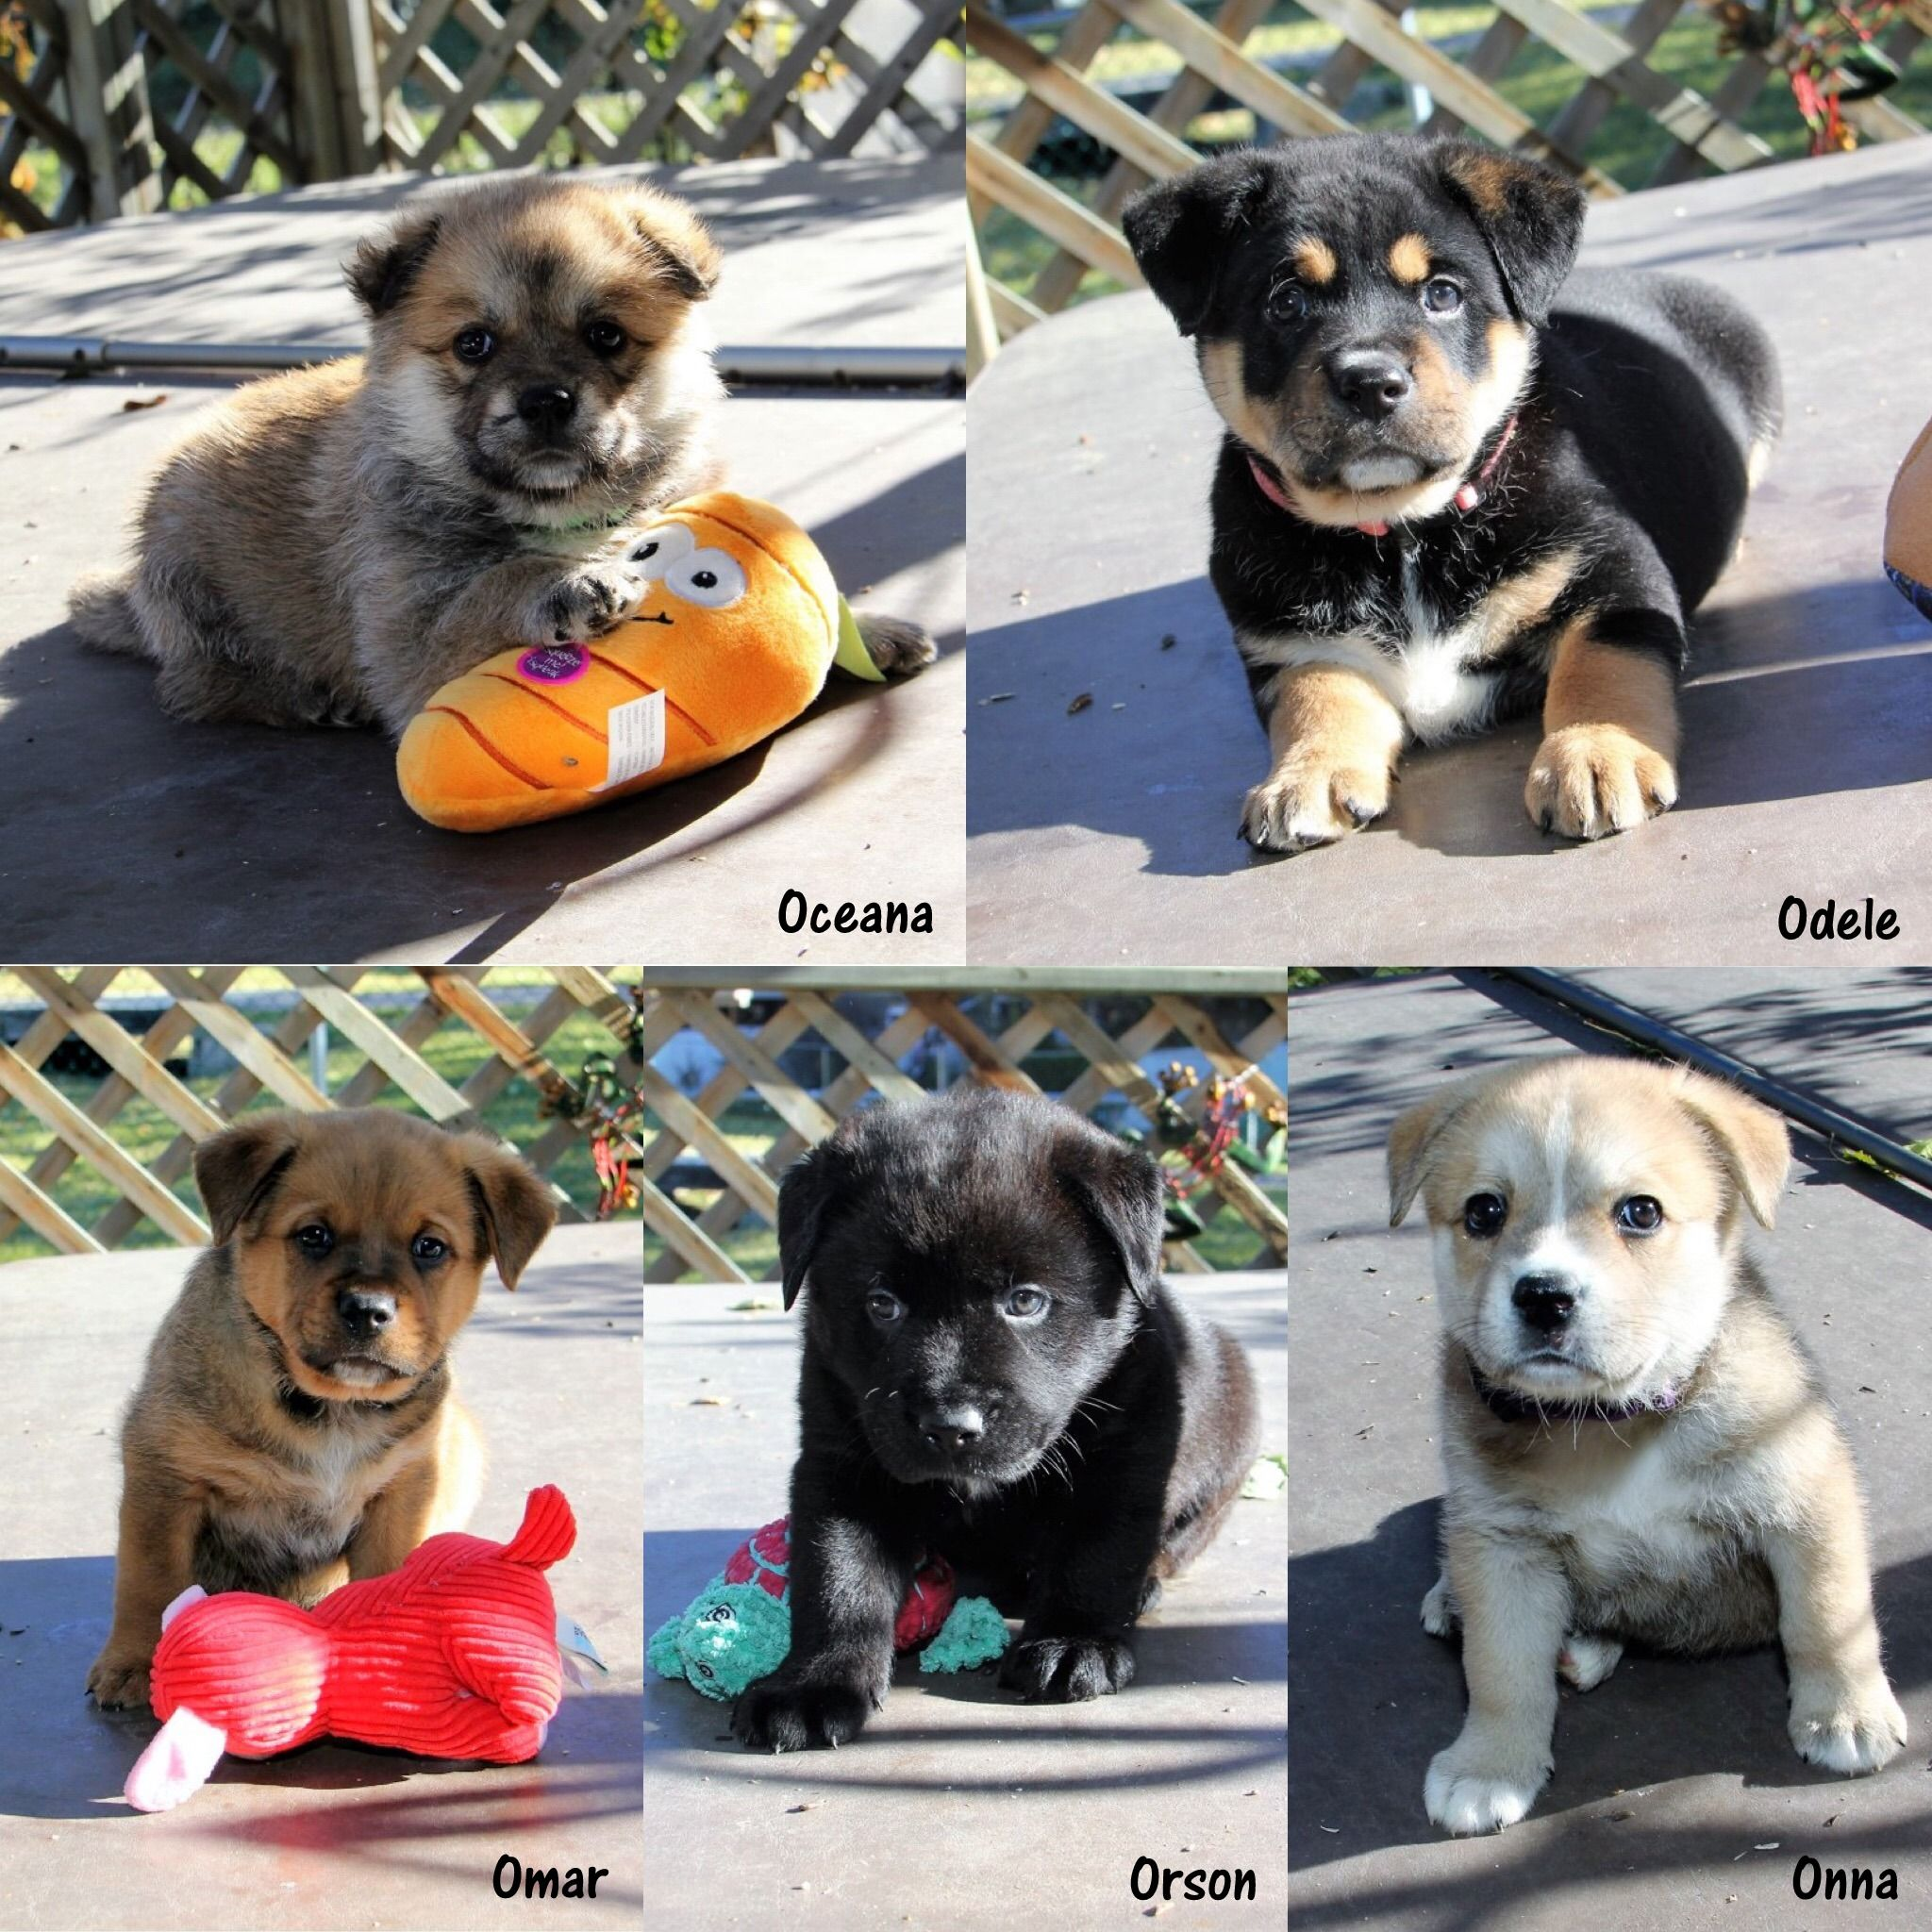 This is the O litter, they are now available for adoption